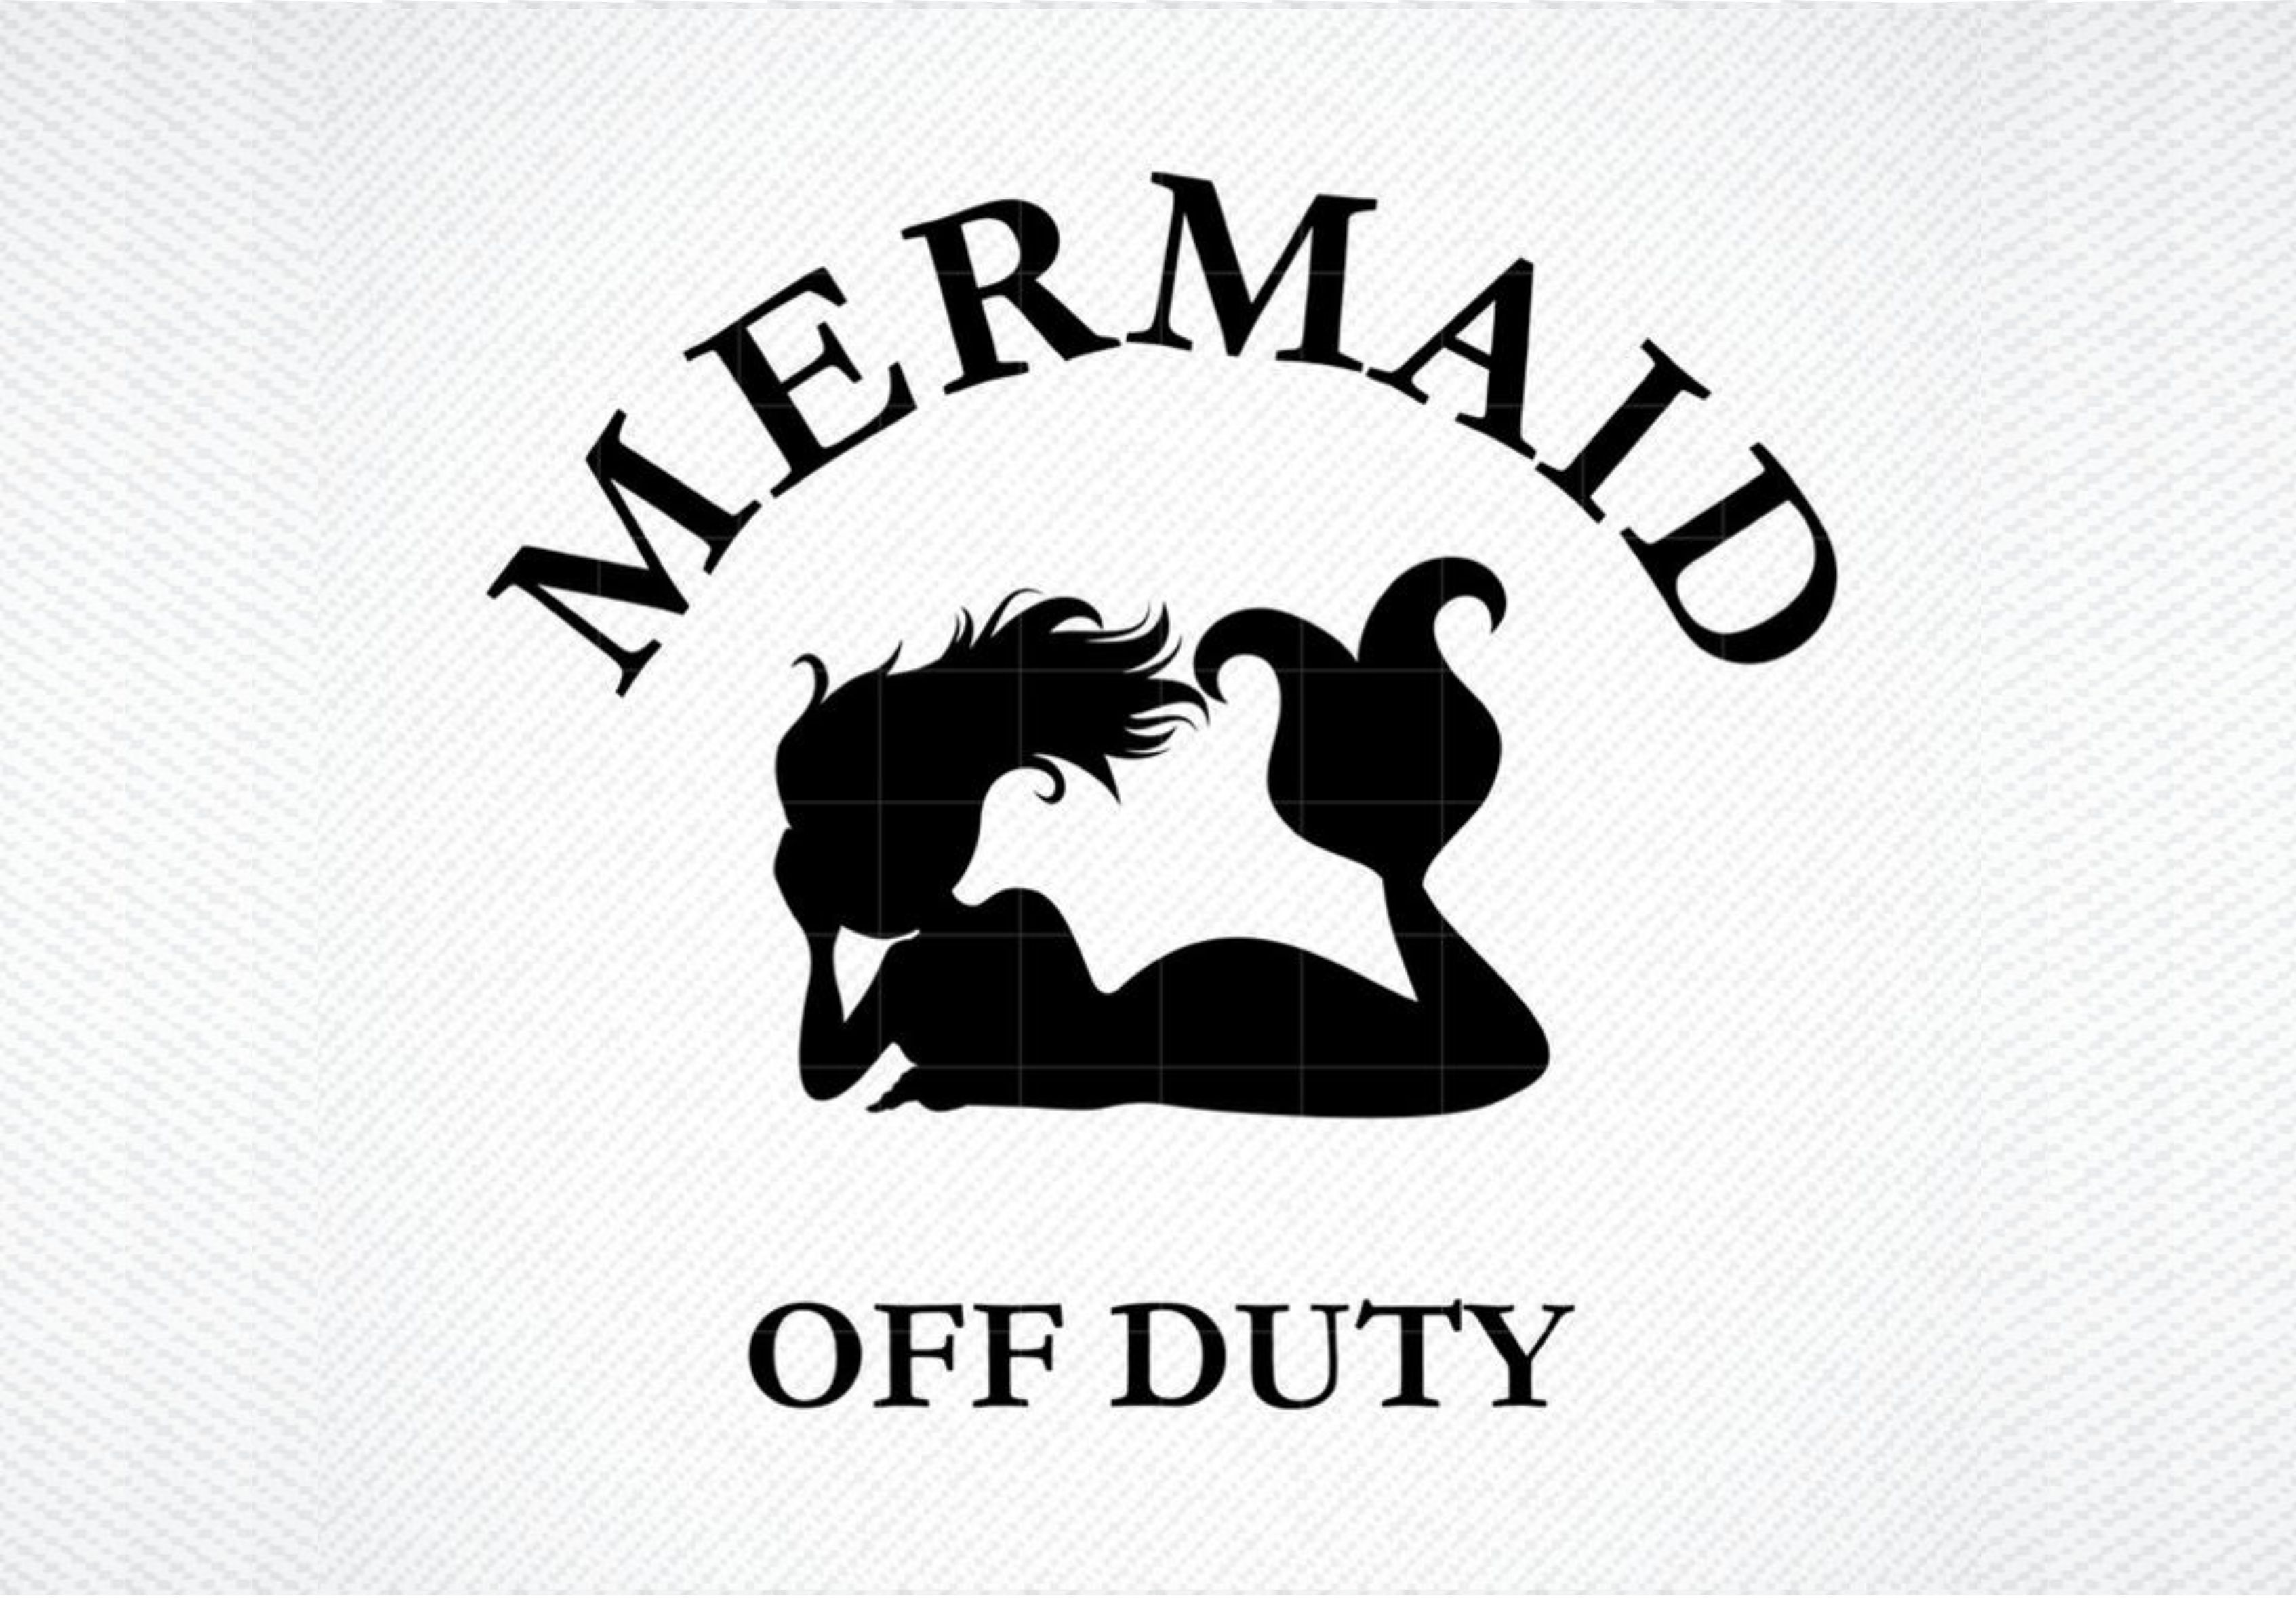 Download Free Mermaid Off Duty Graphic By Svg Den Creative Fabrica for Cricut Explore, Silhouette and other cutting machines.